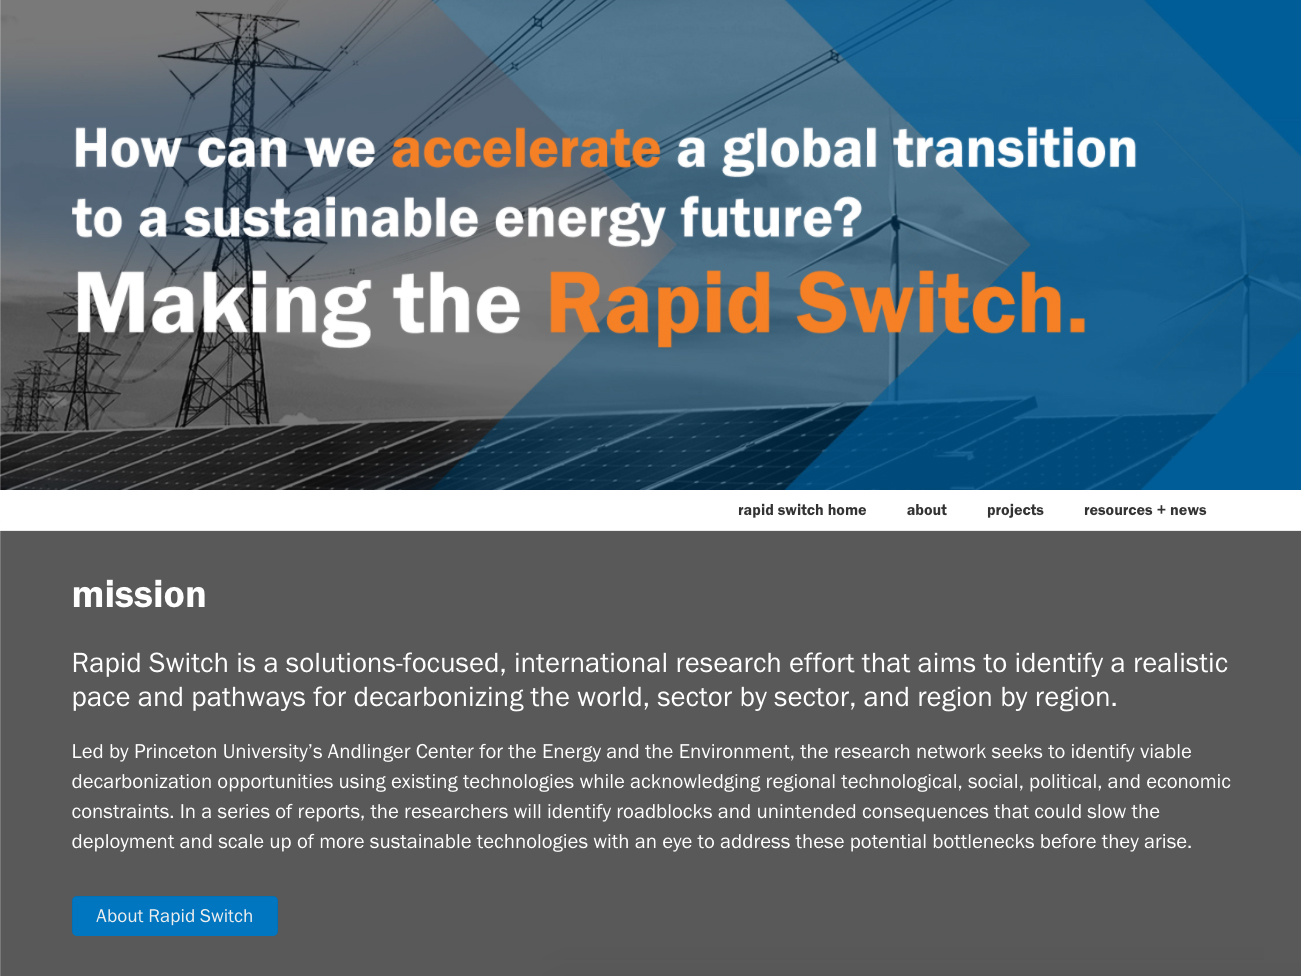 Explore Rapid Switch - the global decarbonization initiative spearheaded by the Andlinger Center